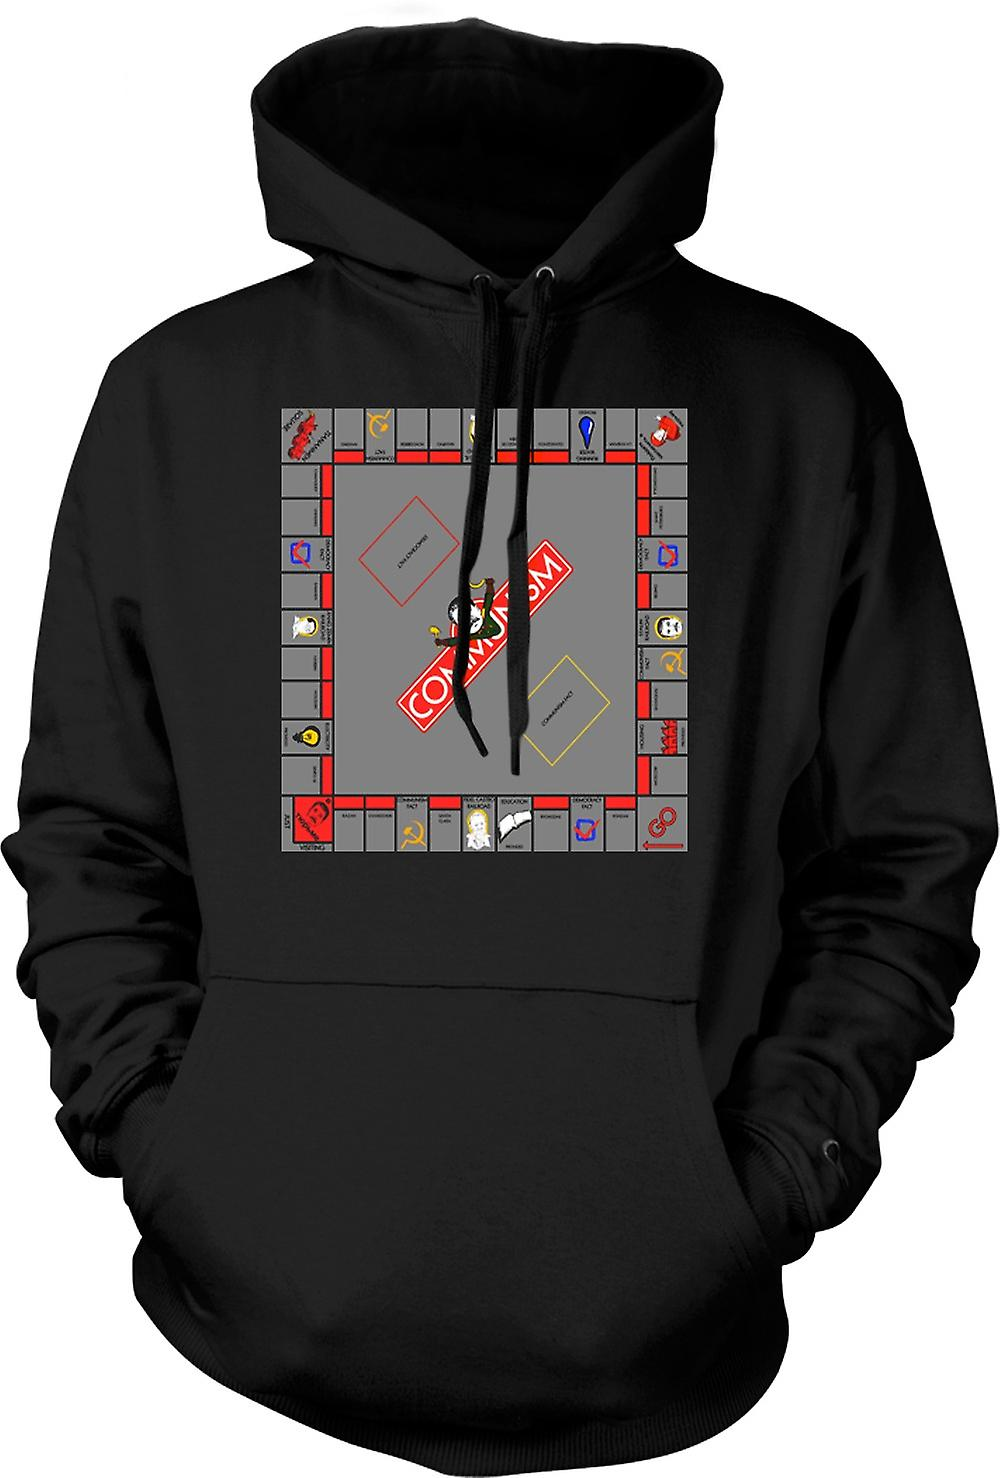 Mens Hoodie - Monopoly Communist Version - Funny